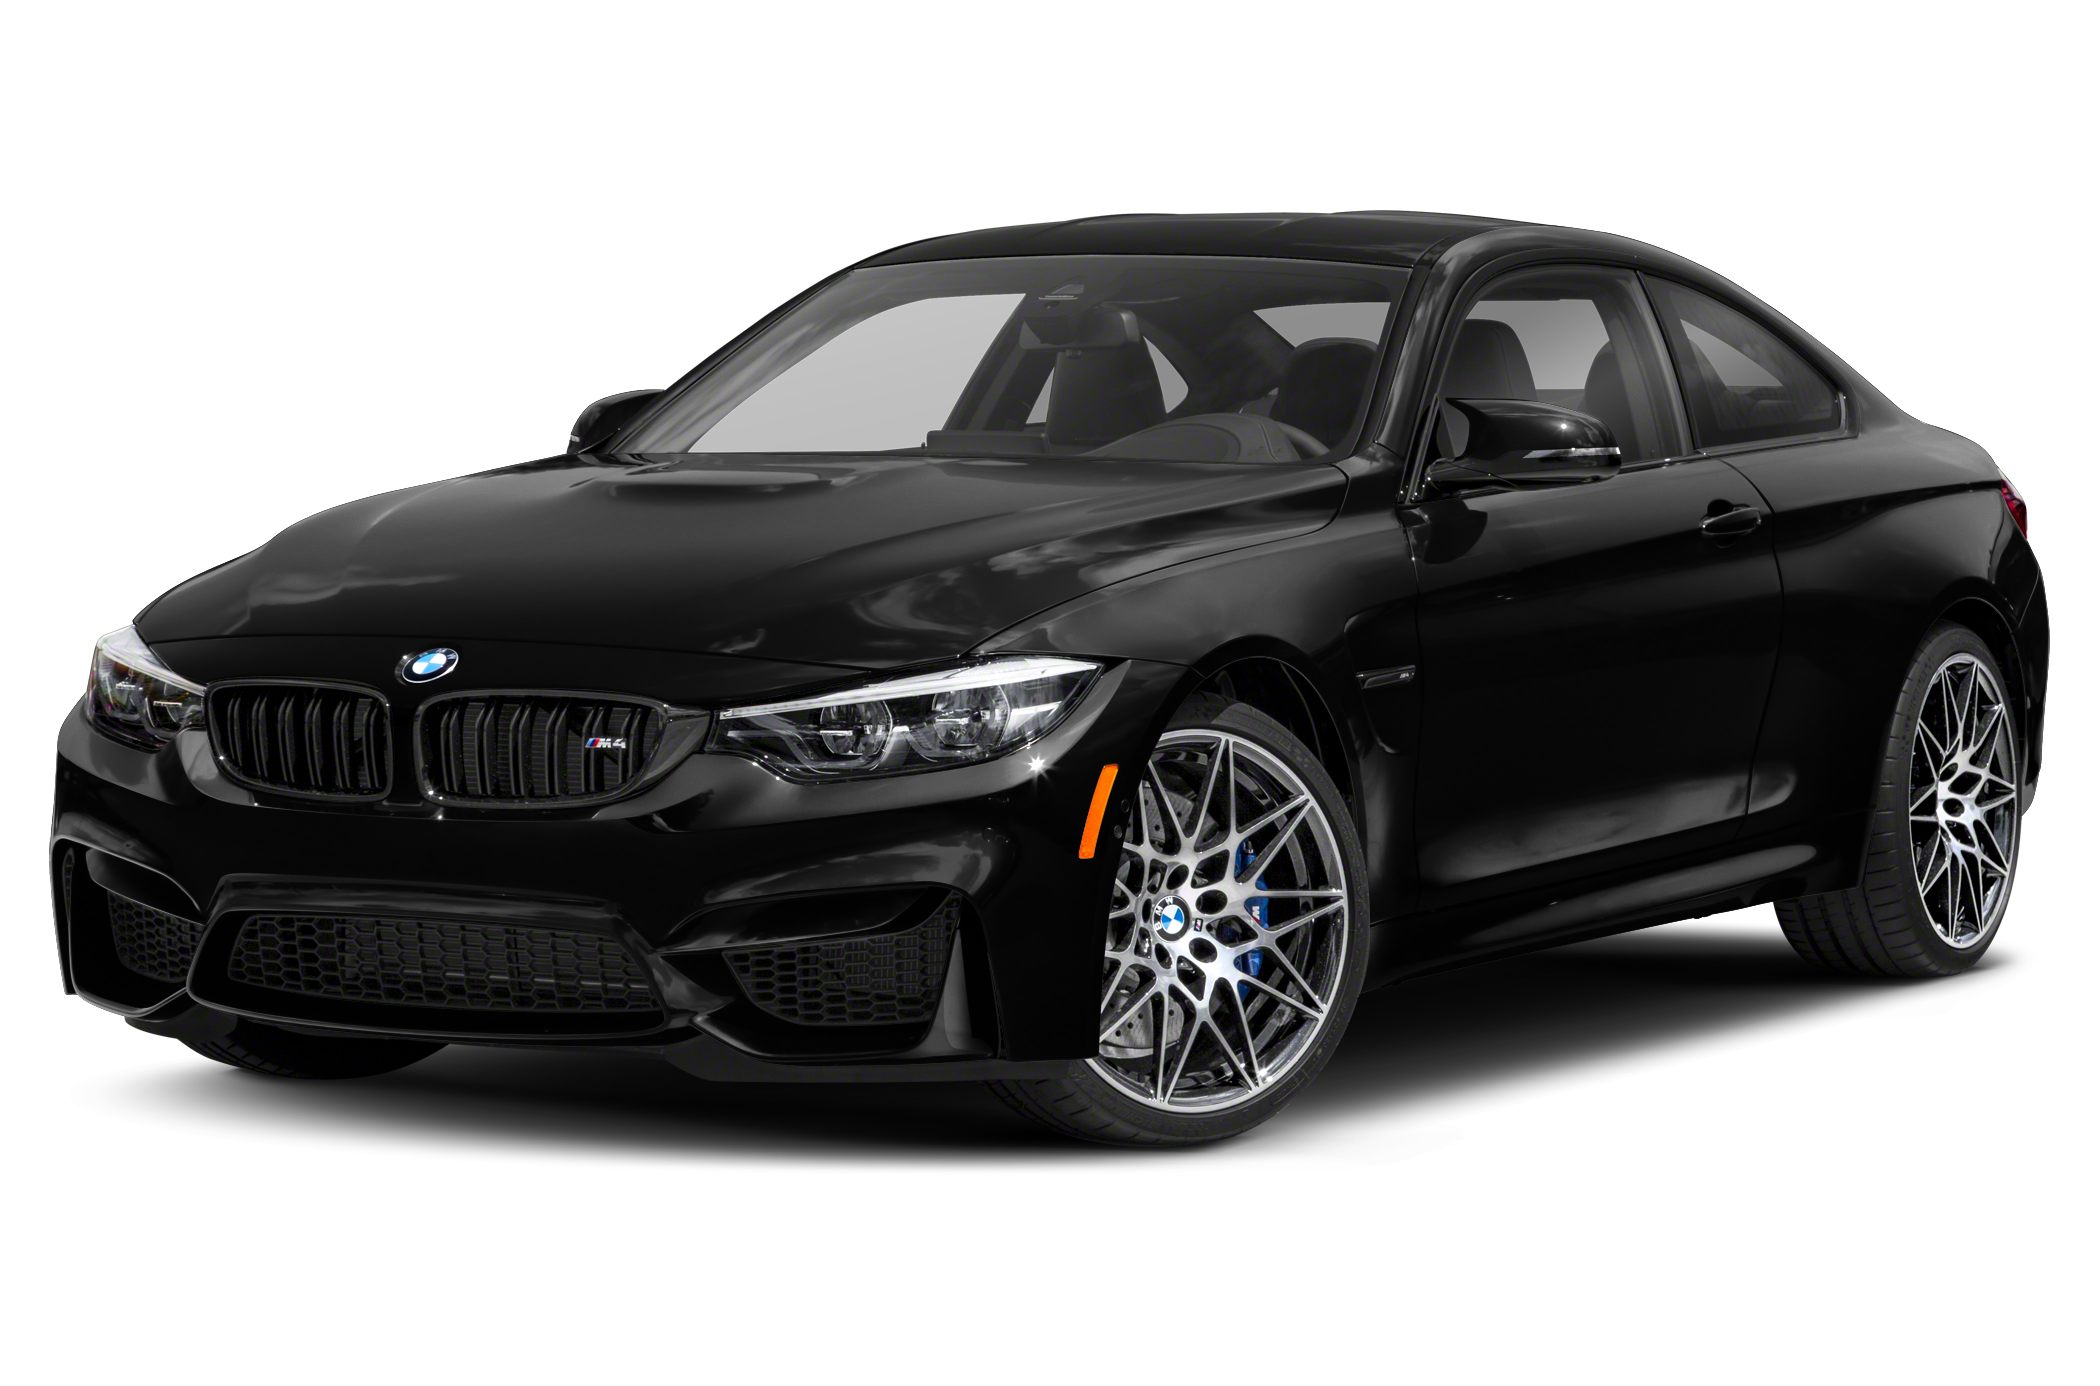 2019 Bmw M4 Specs And Prices